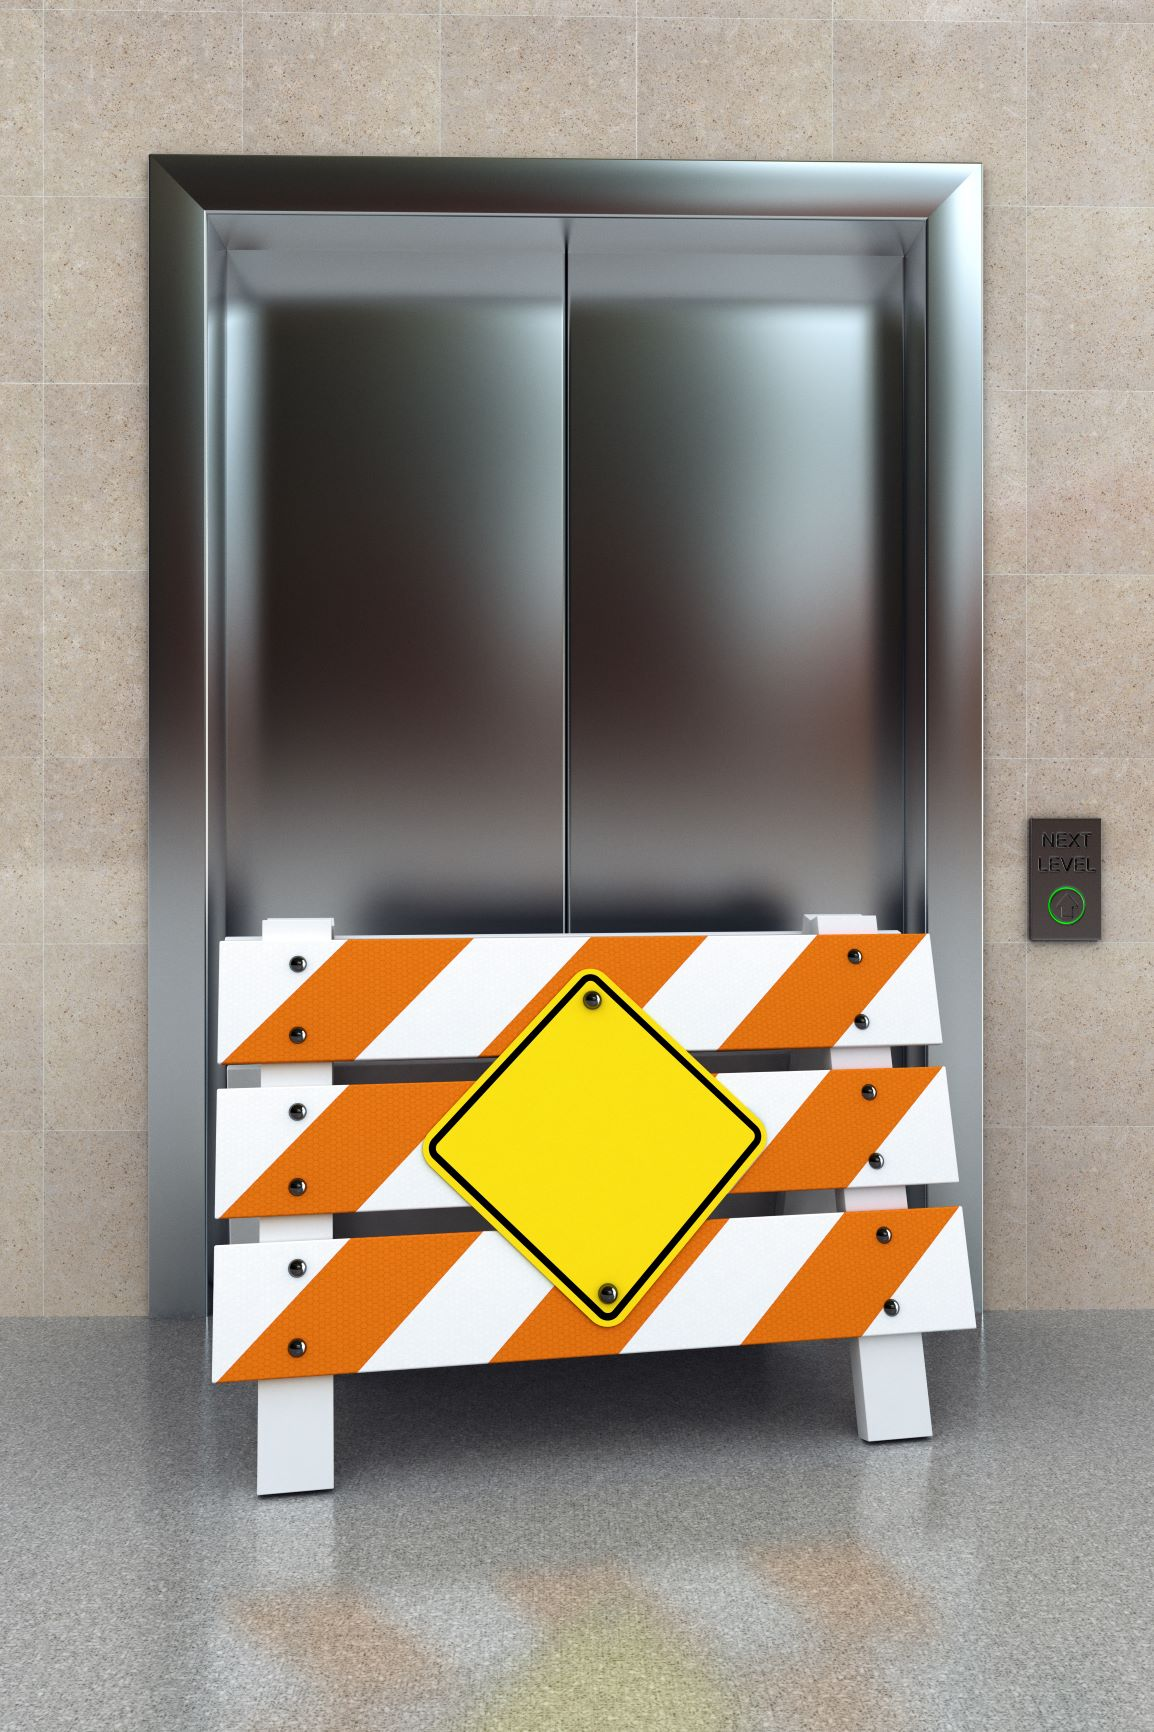 3 Elevator Issues You Should Pay Attention To